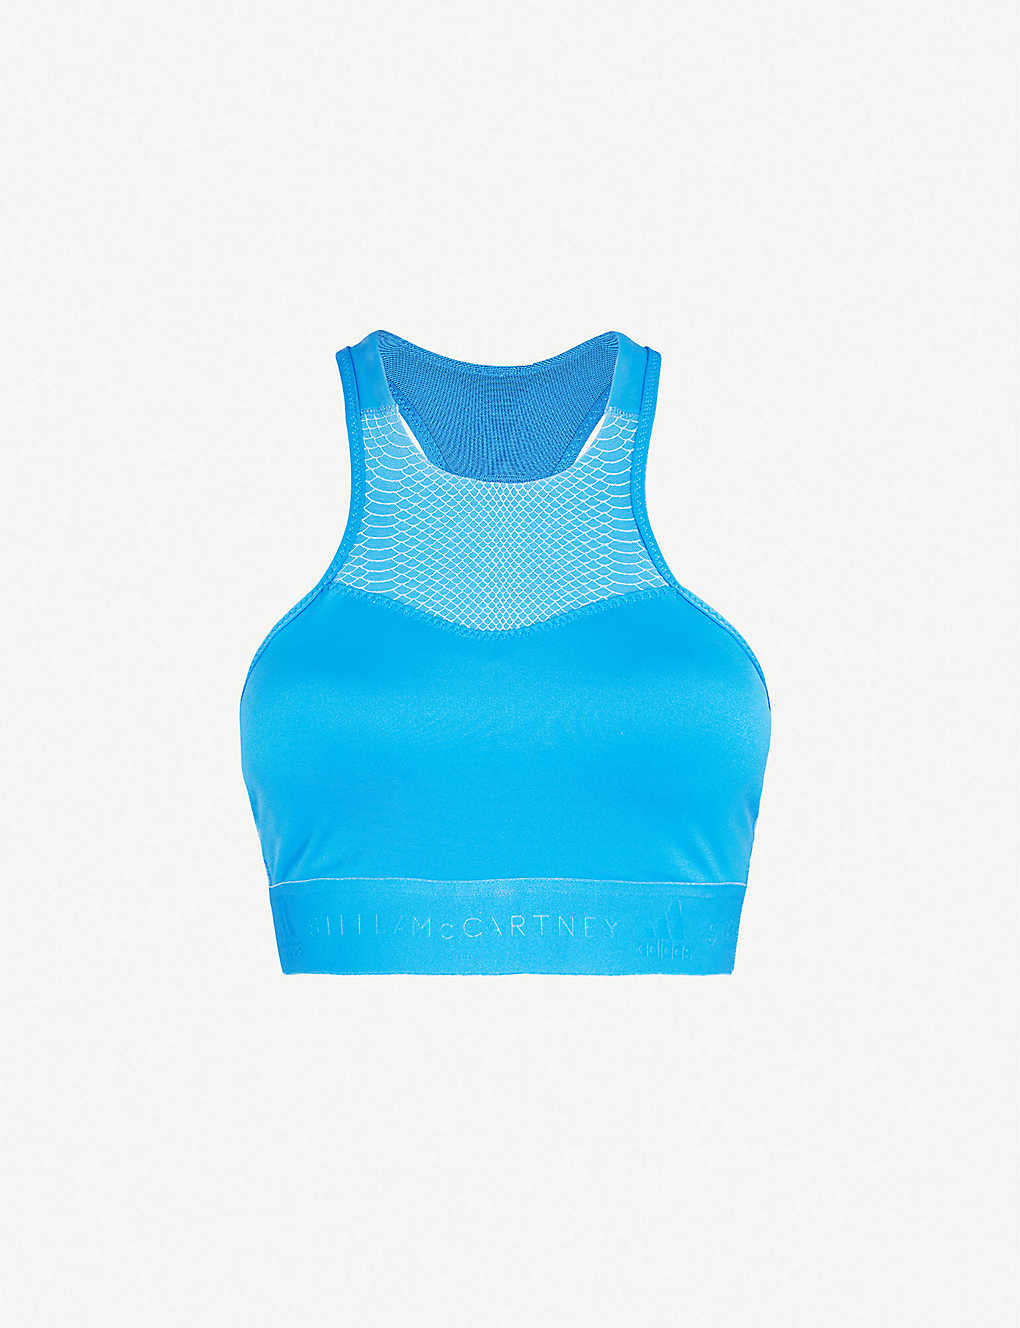 7219632c48859 ADIDAS BY STELLA MCCARTNEY - Hiit stretch-jersey sports bra ...